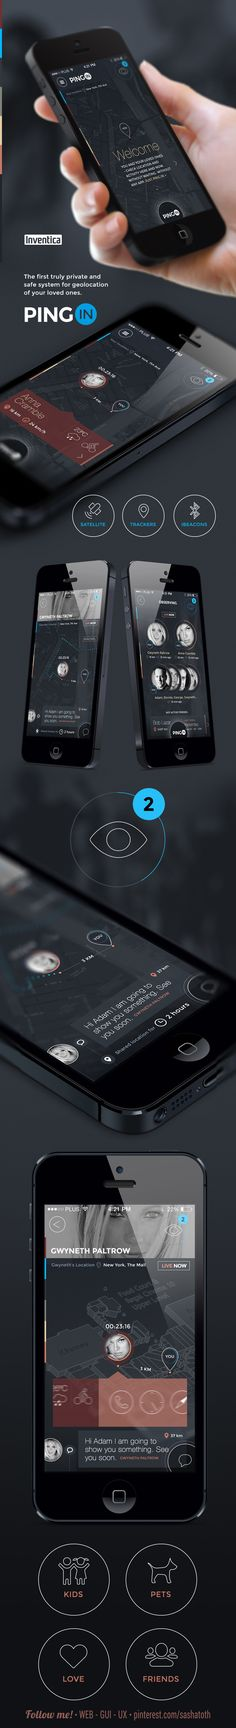 PINGin WIP by Adam Jesionkiewicz, via Behance *** #app #gui #ui #behance